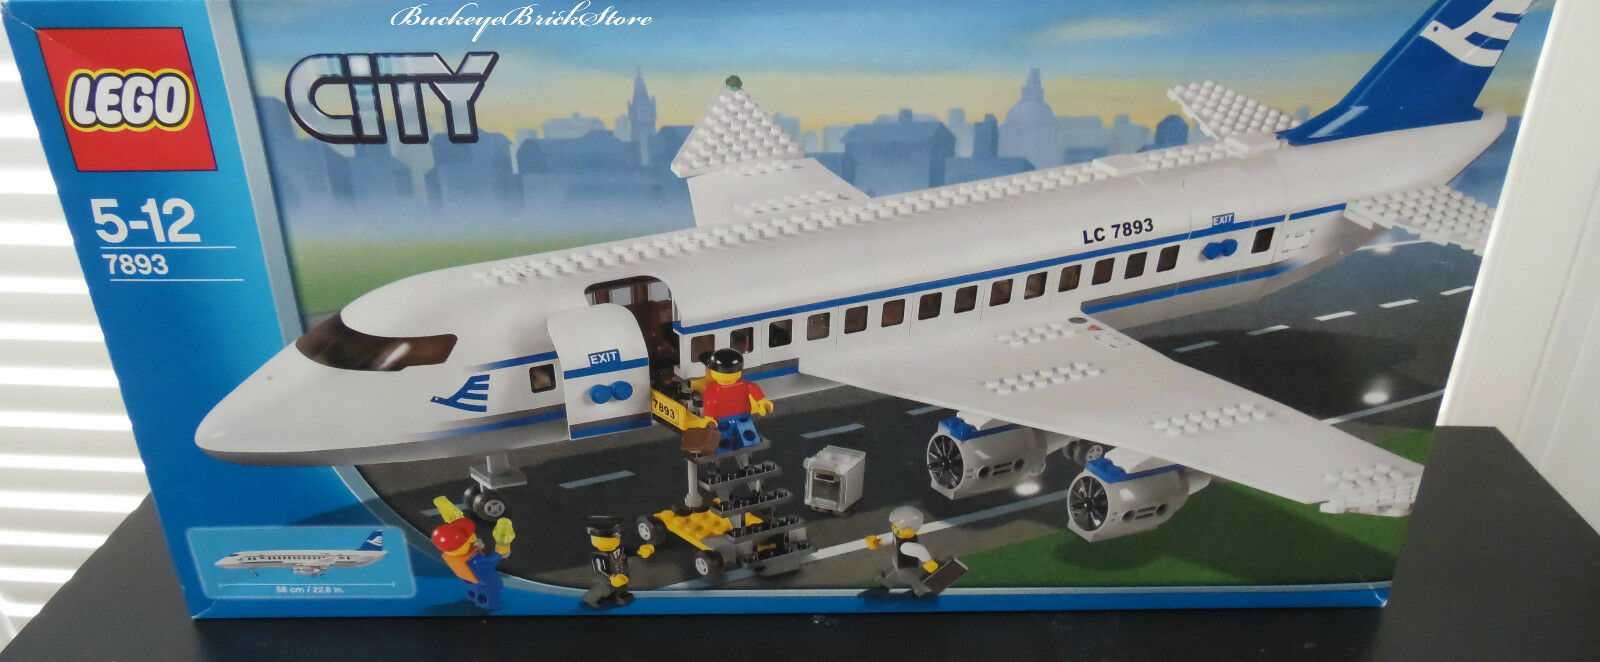 Lego Town City Airport 7893 Passenger Plane New Sealed 66500